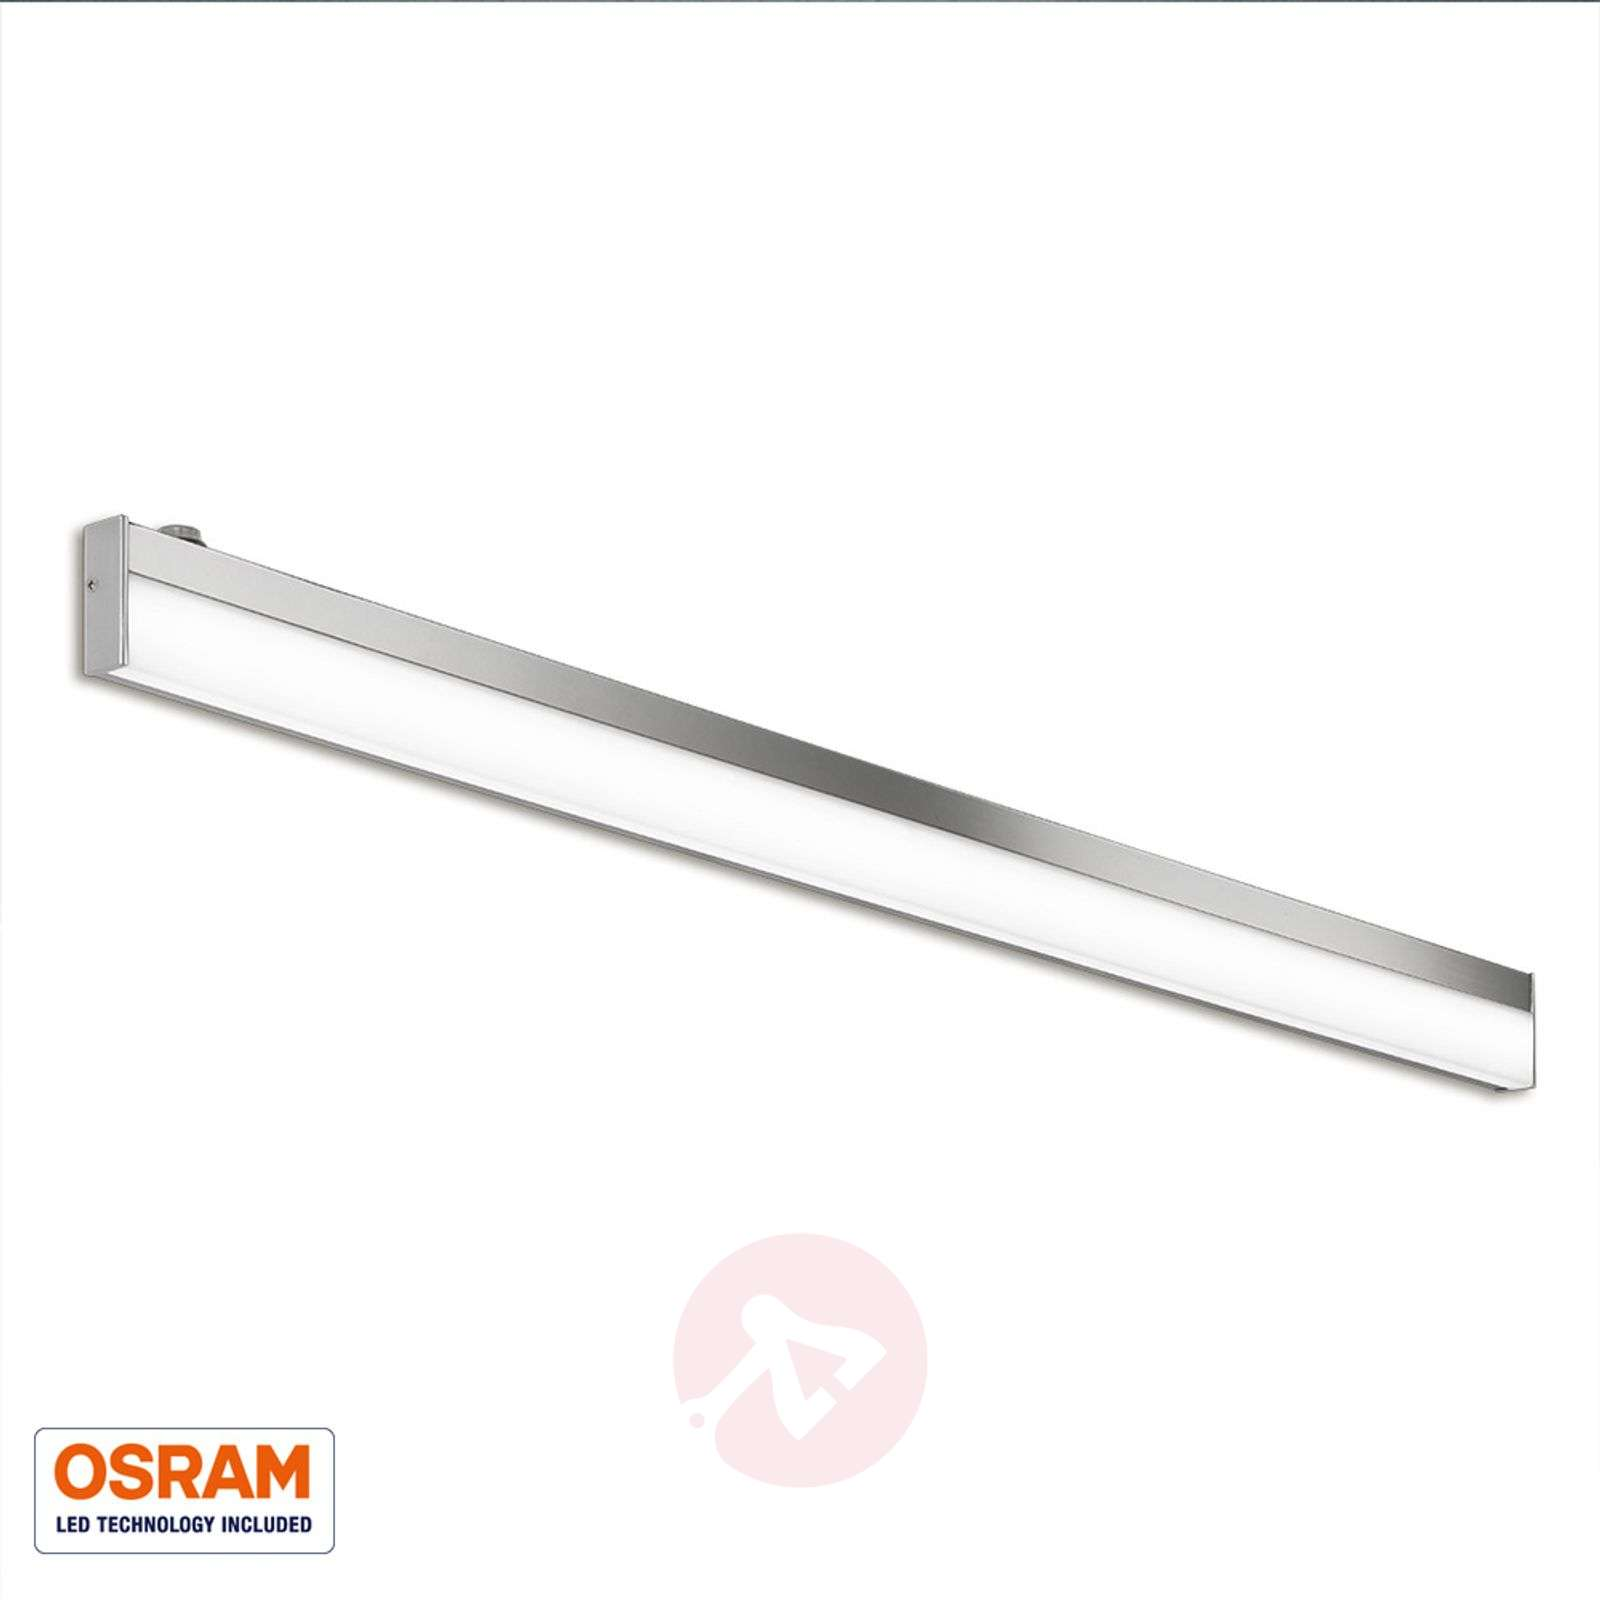 Kilian LED bathroom wall light, IP44-9004600-04